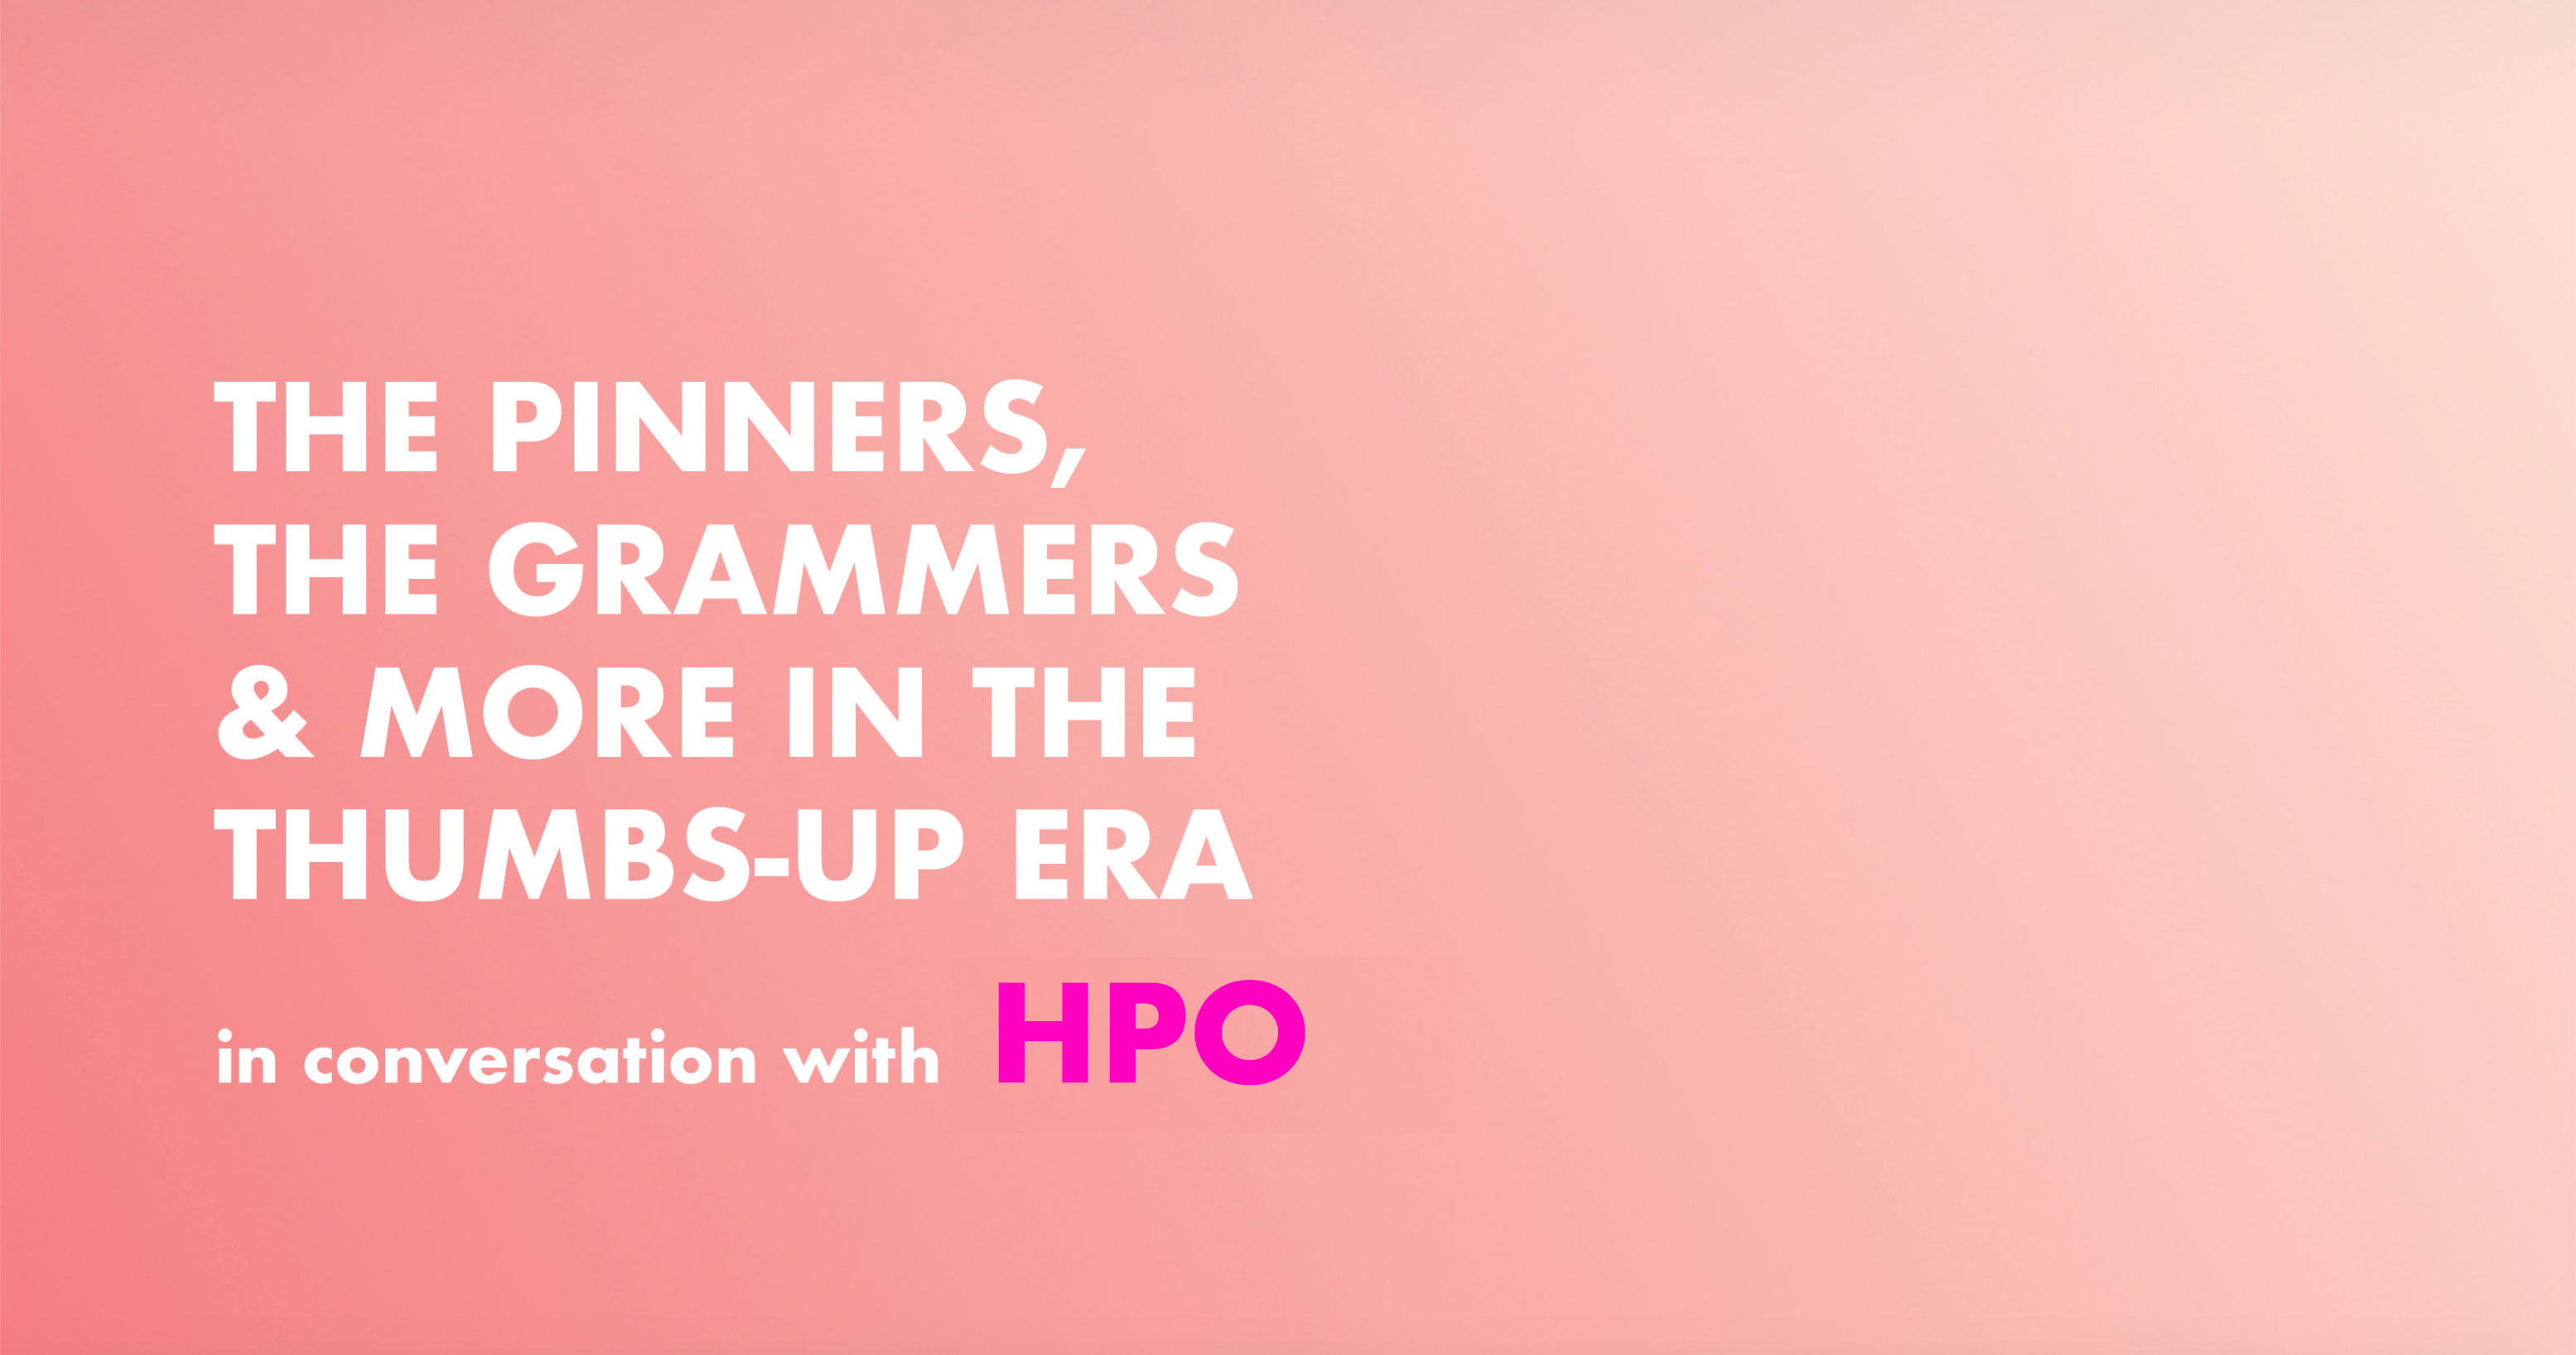 The Pinners, the Grammers and more in the thumbs up era: HPO